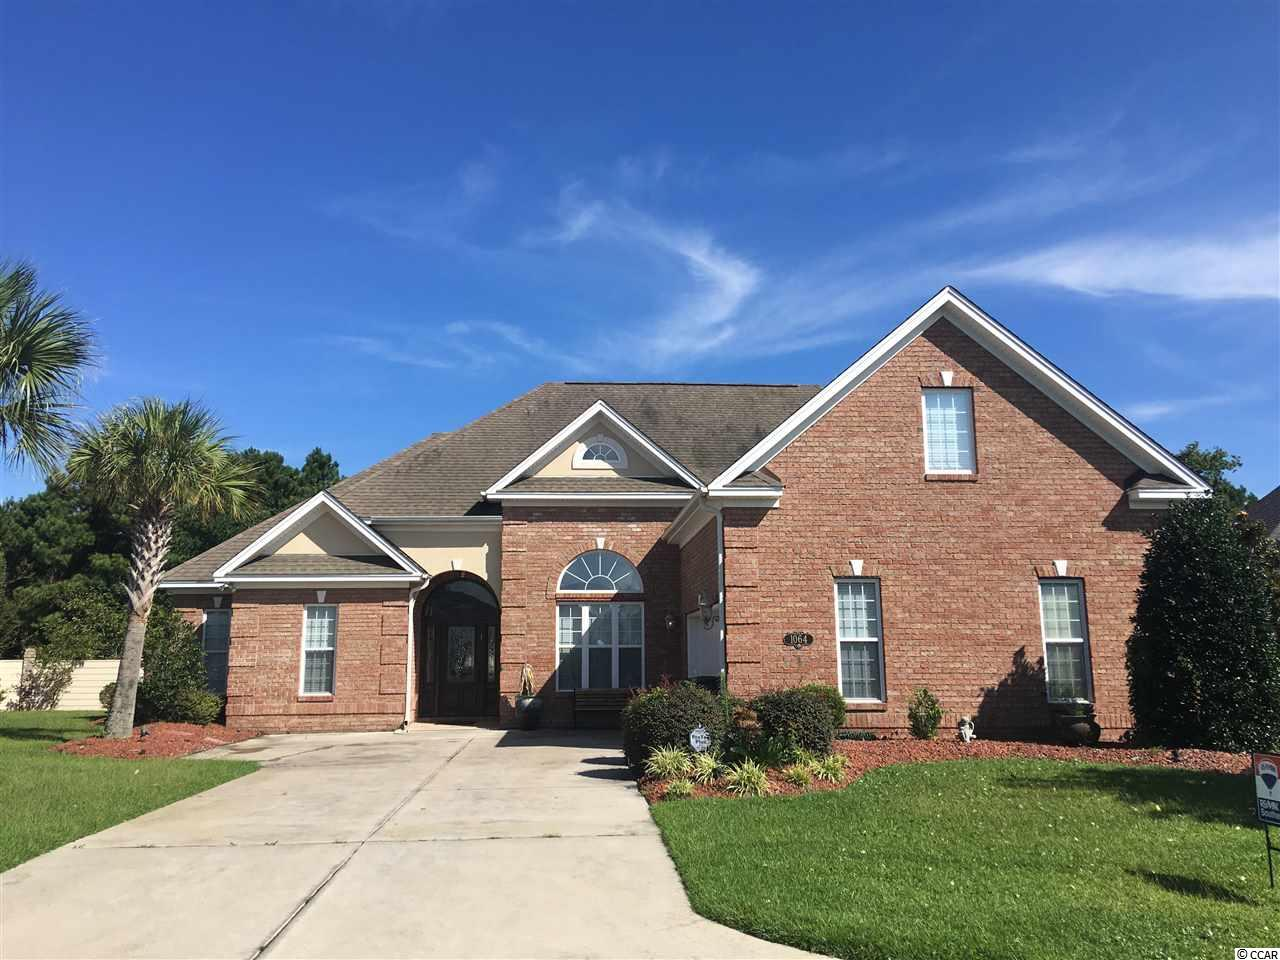 1064 Cole Ct. 29577 - One of Myrtle Beach Homes for Sale